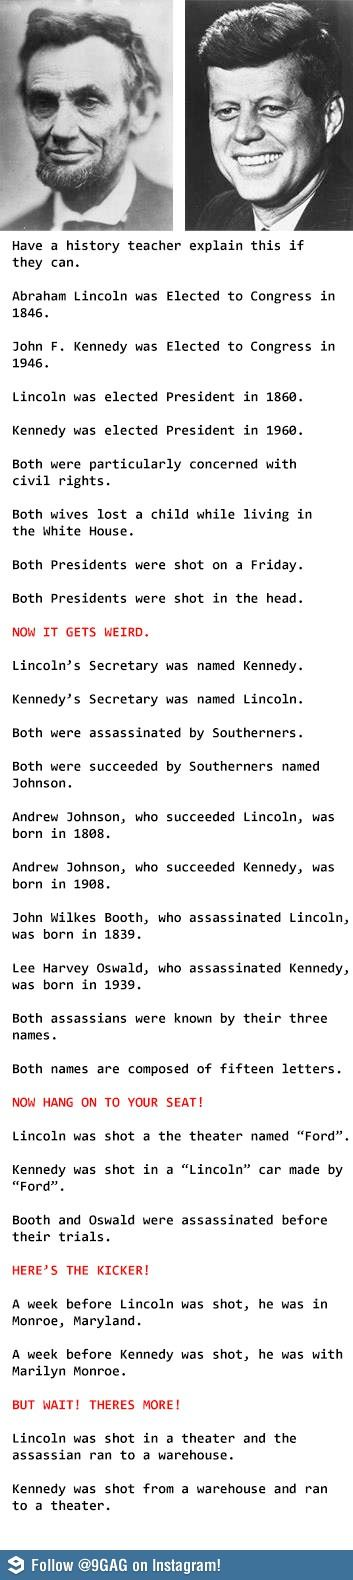 does anybody know if any of this it true? if it was that would be pretty weird…